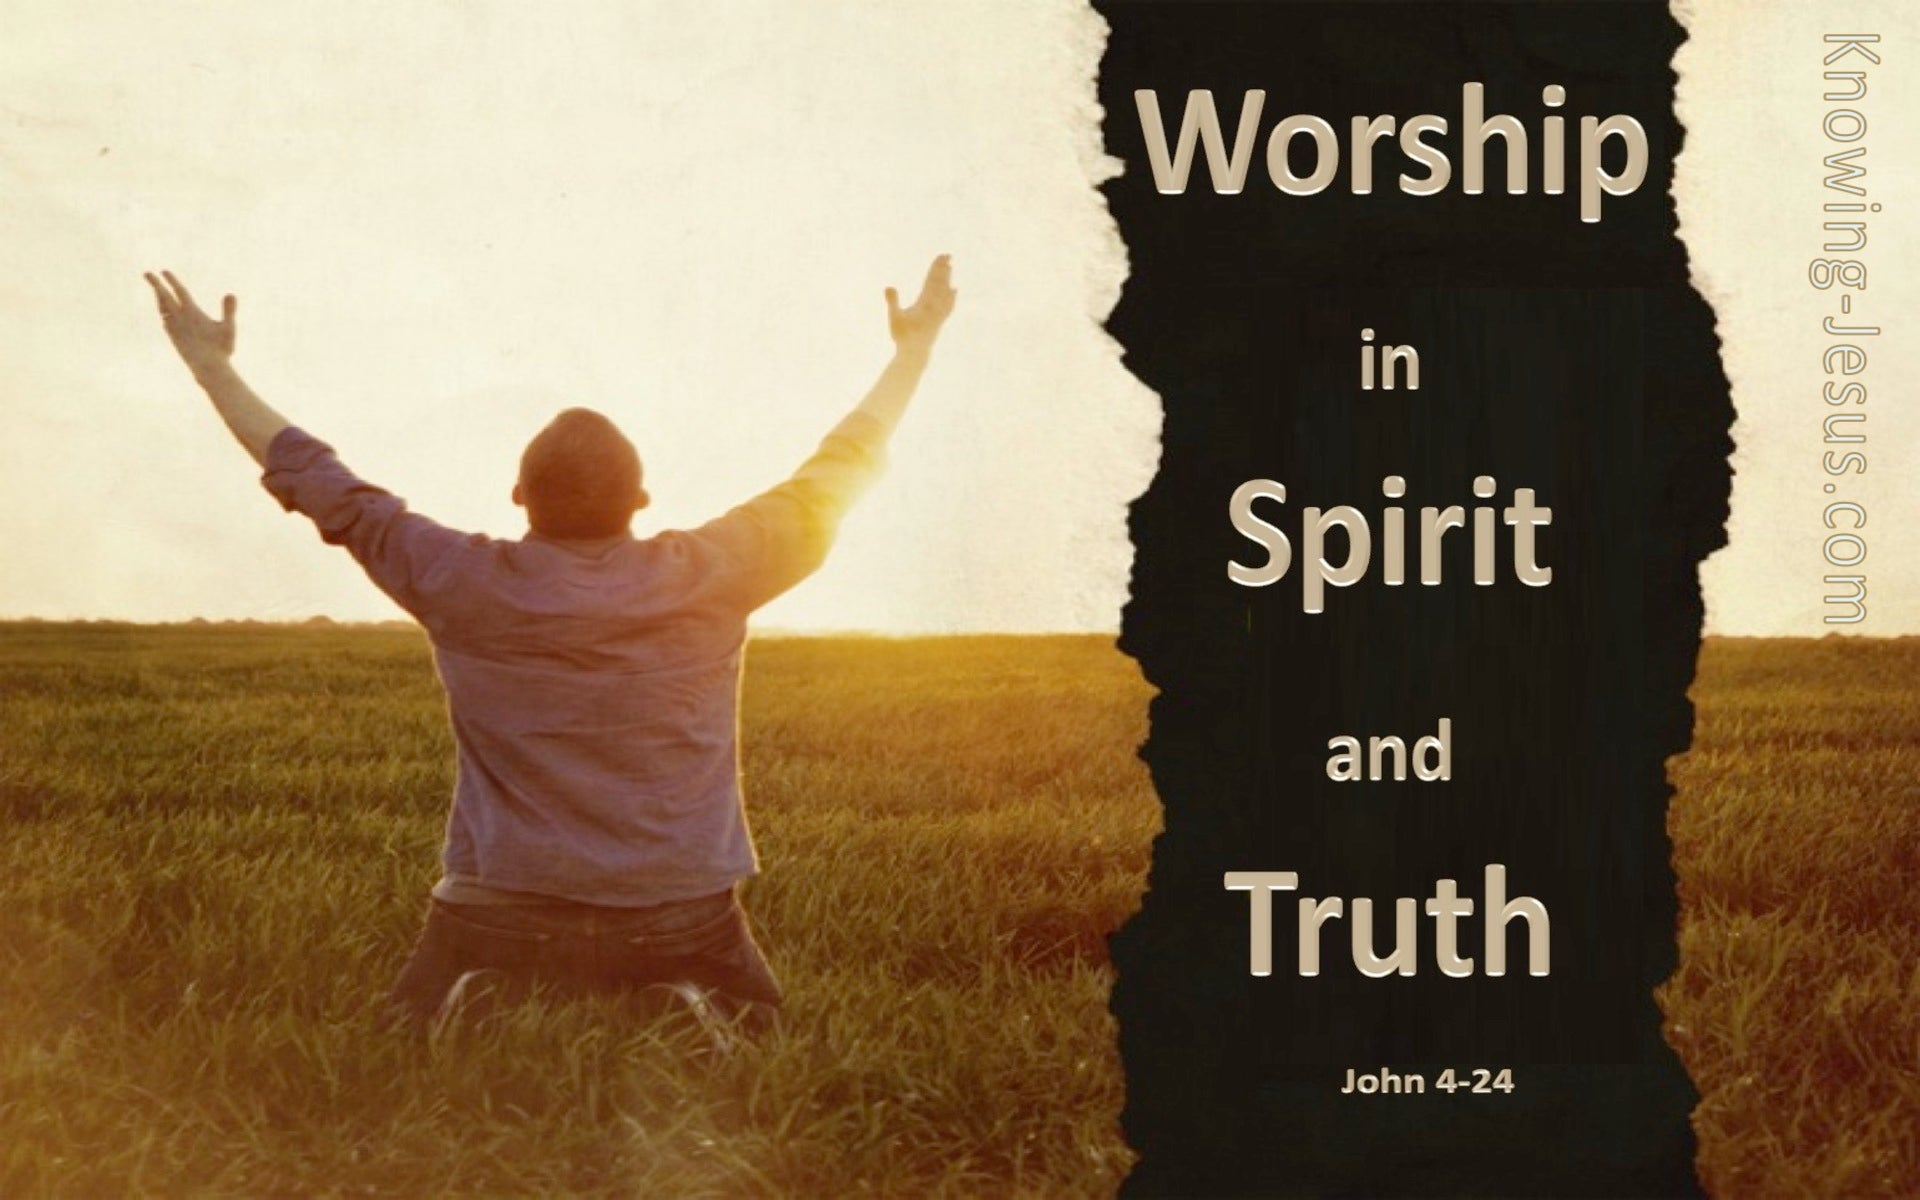 John 4:24  Worship in Spirit and Truth (devotional)11-04 (beige)